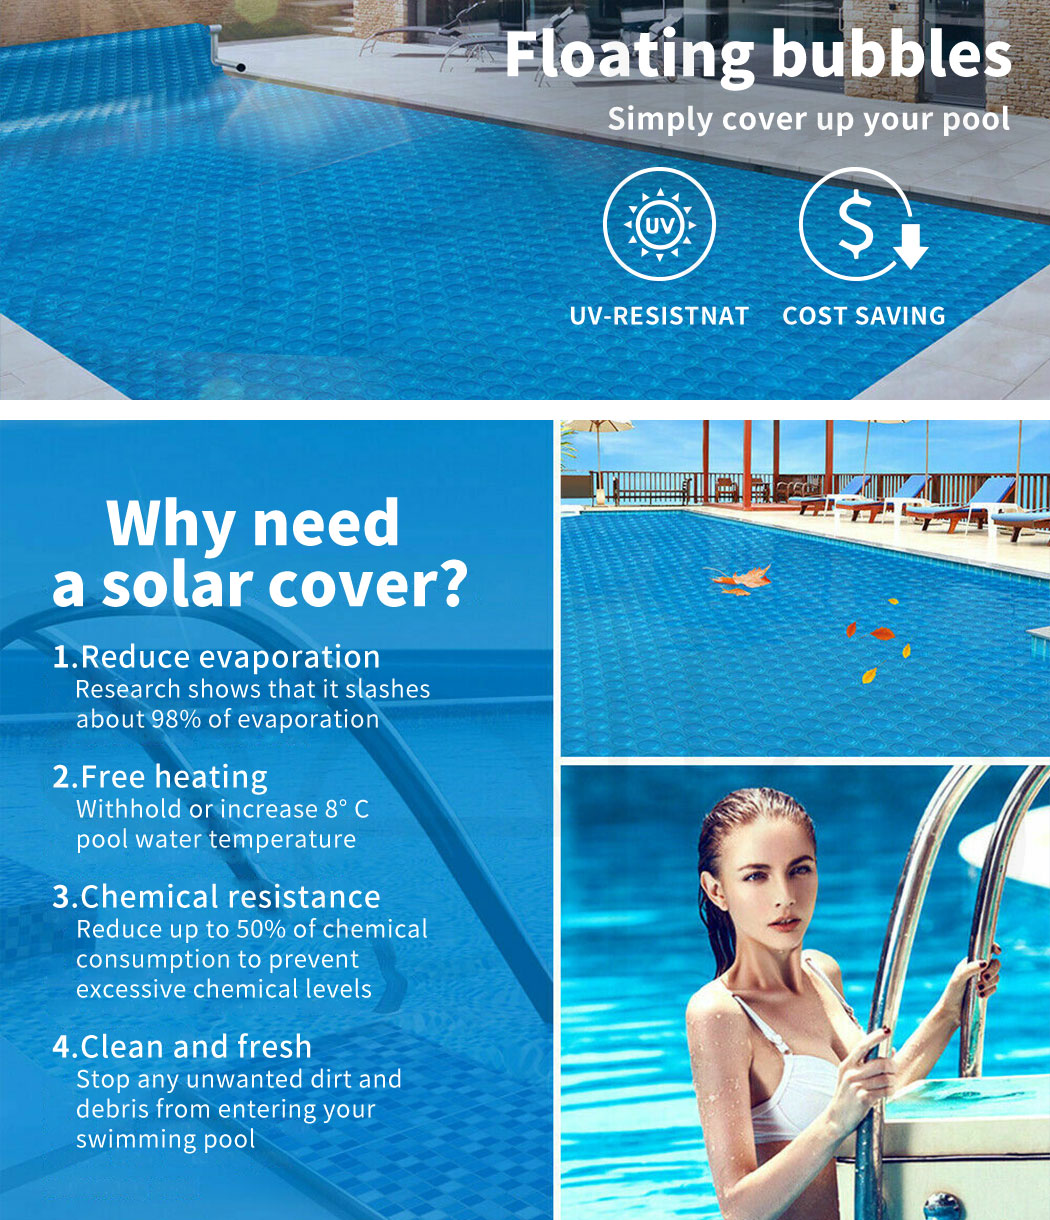 Solar-Swimming-Pool-Cover-400-500-Micron-Outdoor-Bubble-Blanket-Covers-7-Sizes thumbnail 25